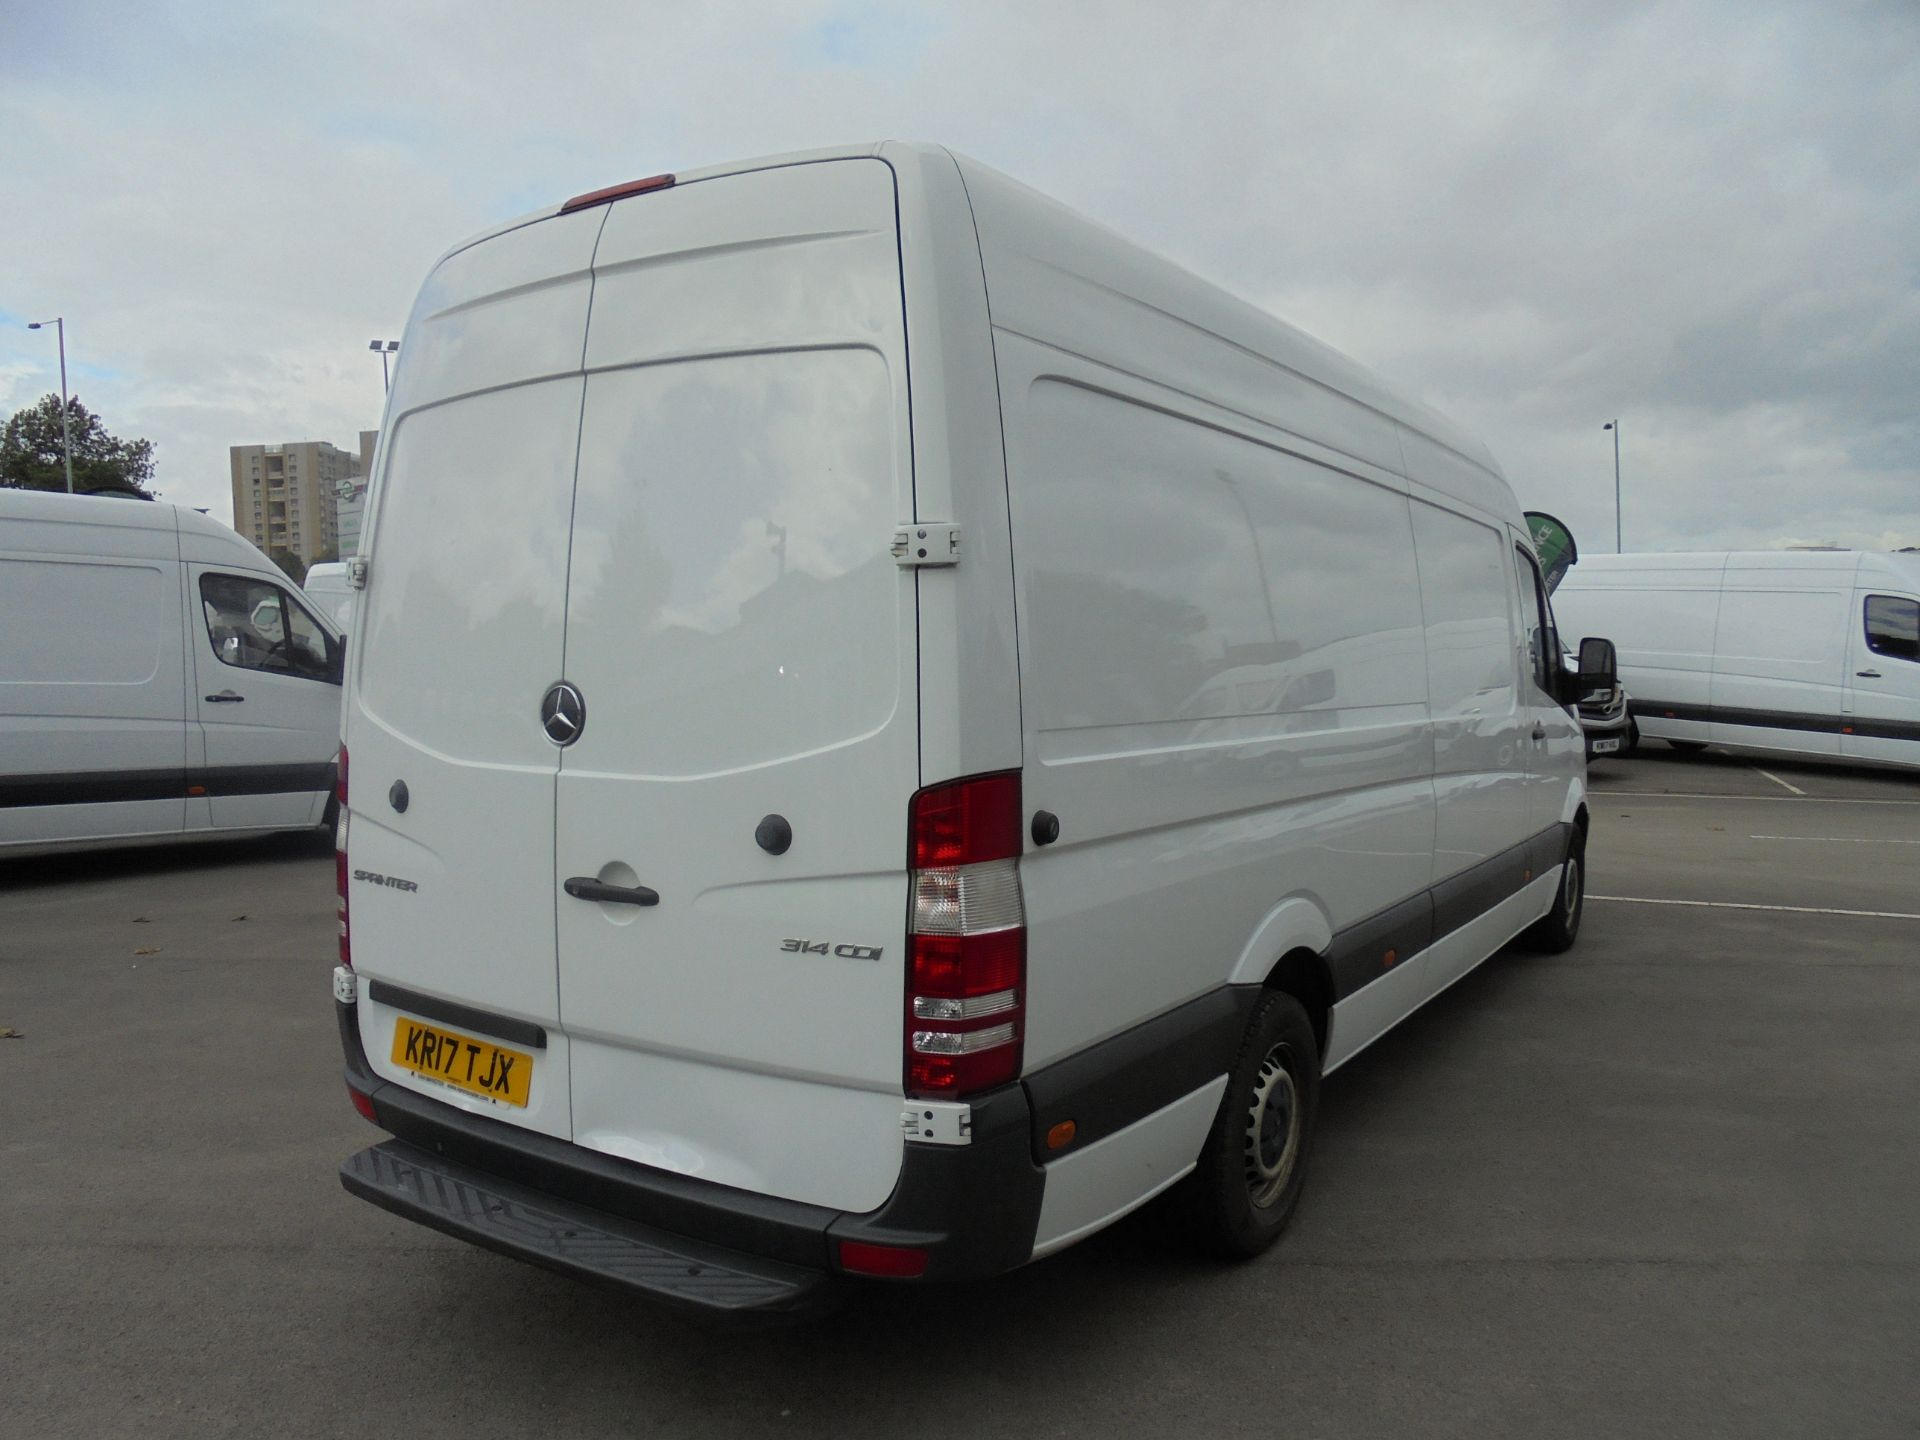 2017 Mercedes-Benz Sprinter 314 CDI 3.5T High Roof Van (KR17TJX) Thumbnail 7